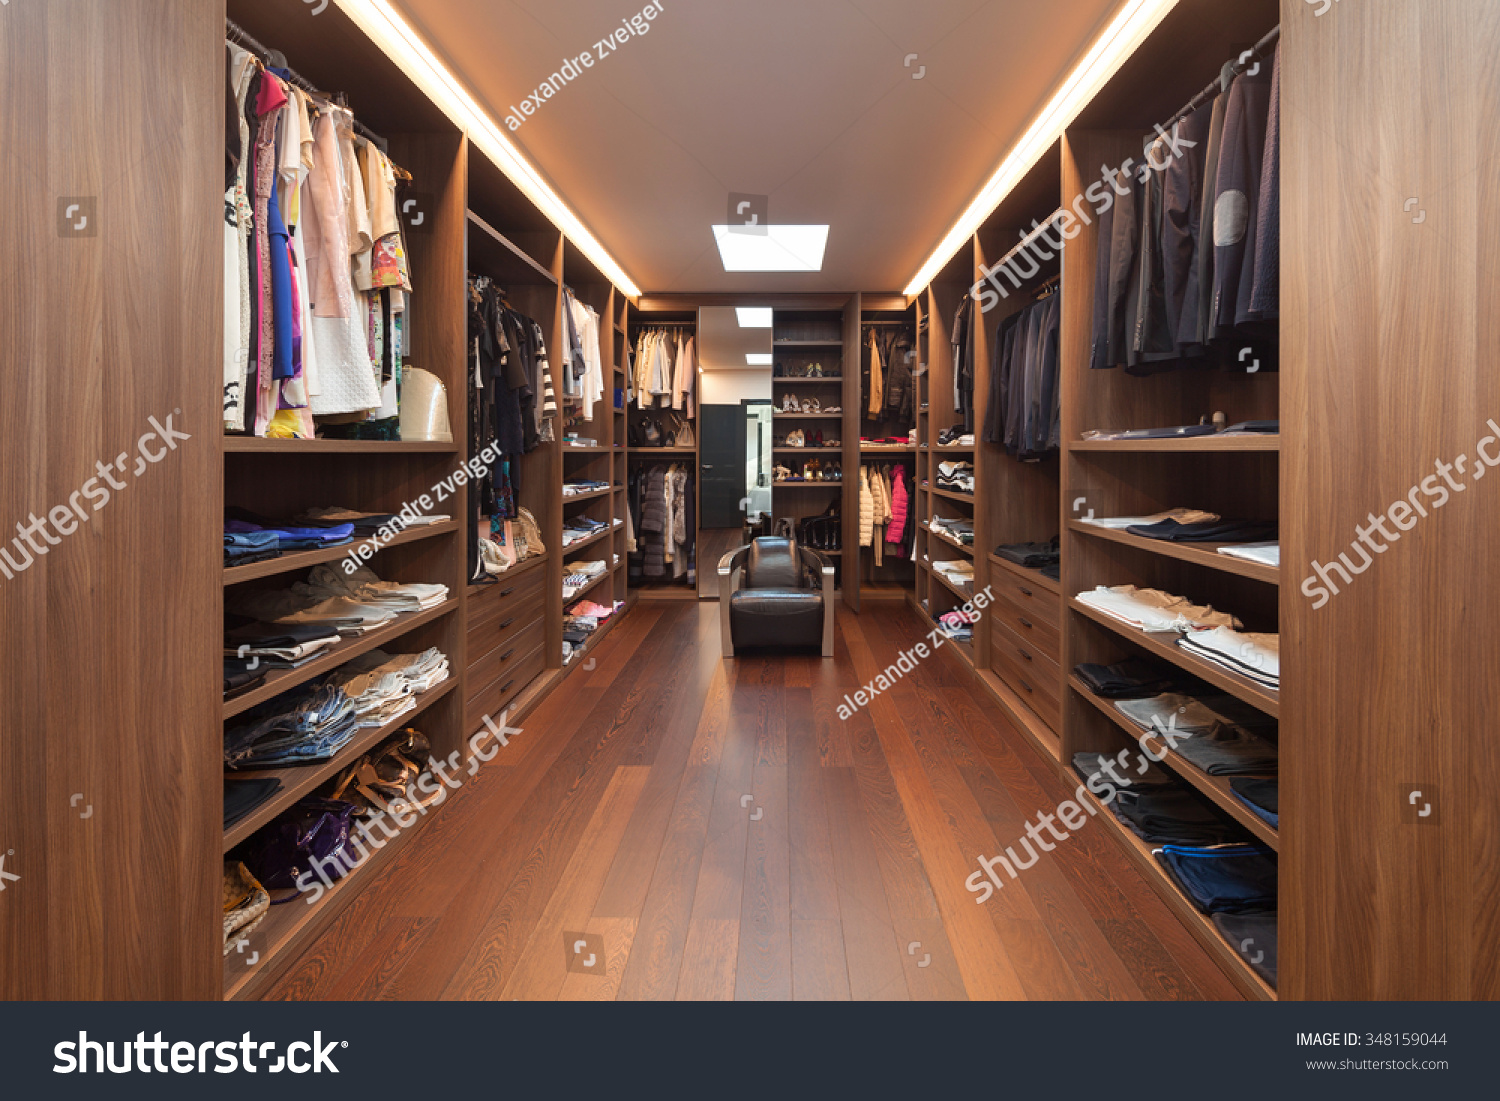 Wide dressing room interior of a modern house stock photo for Dressing room interior